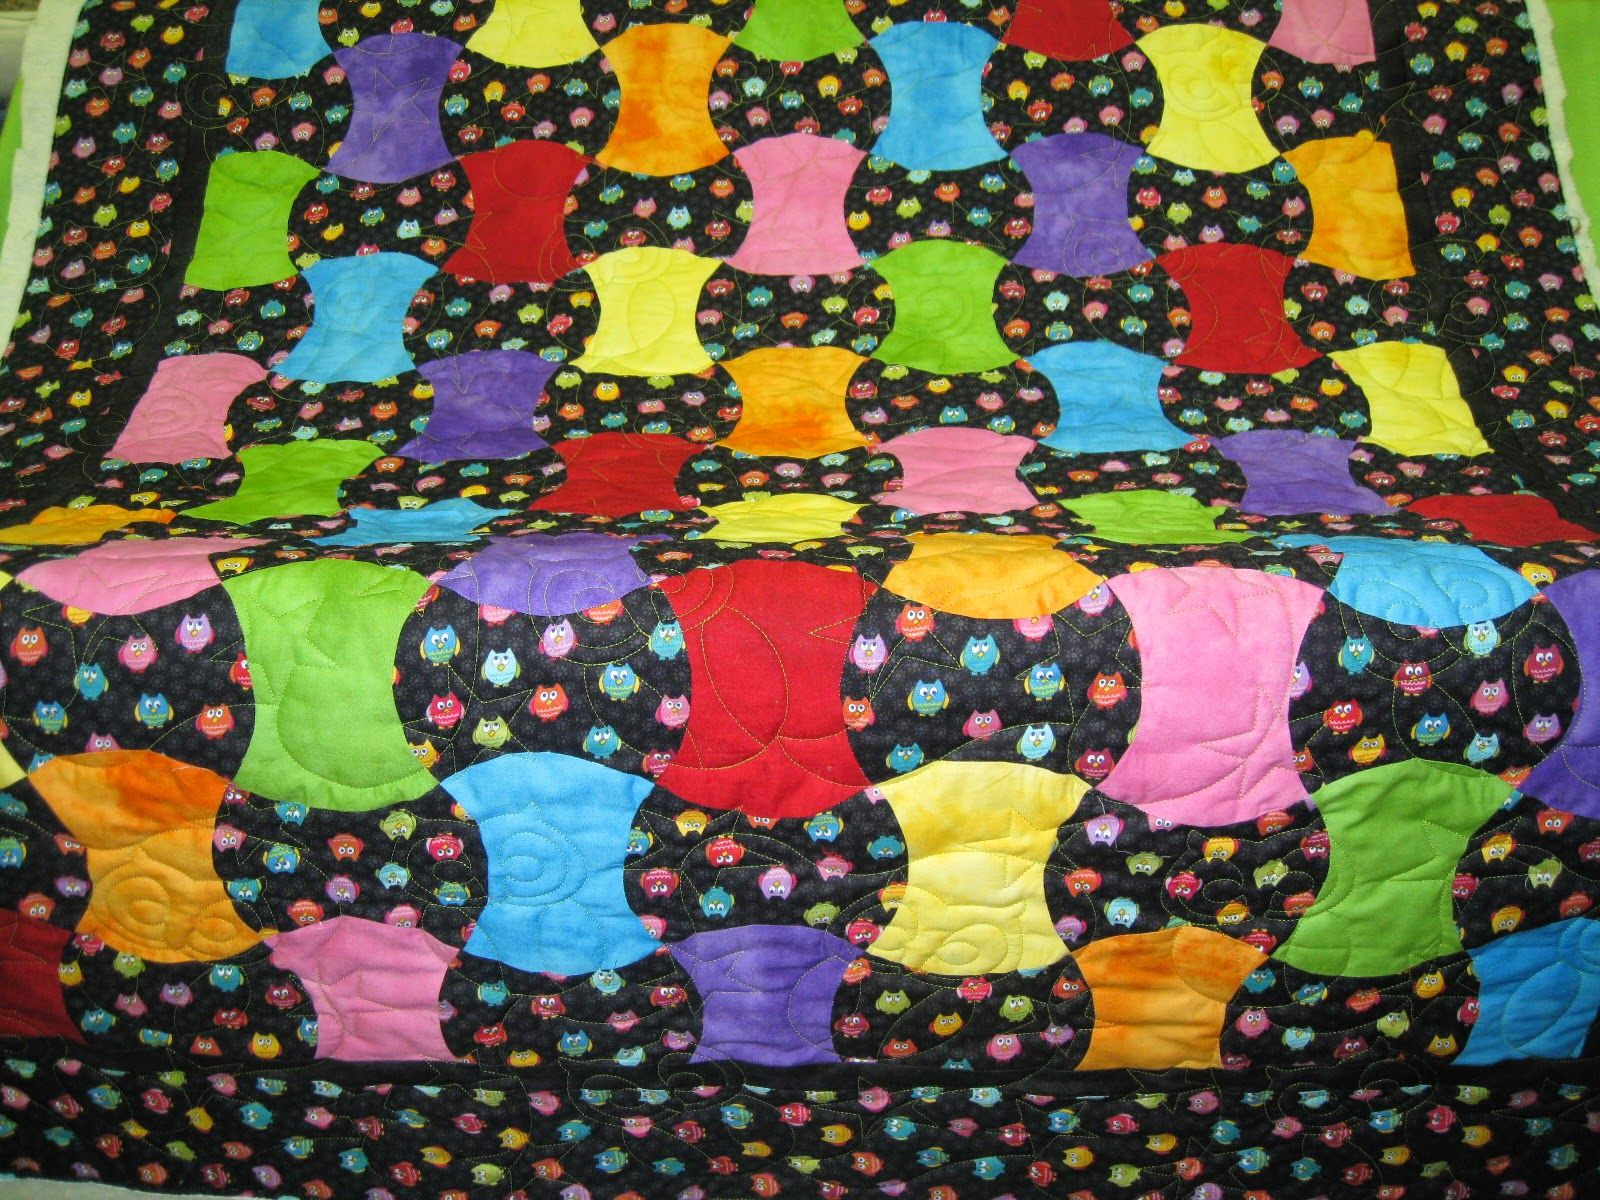 THE BLACK BACKGROUND PATTERN REALLY SETS OFF THE BRIGHT COLORS OF ... : bright colored quilt patterns - Adamdwight.com